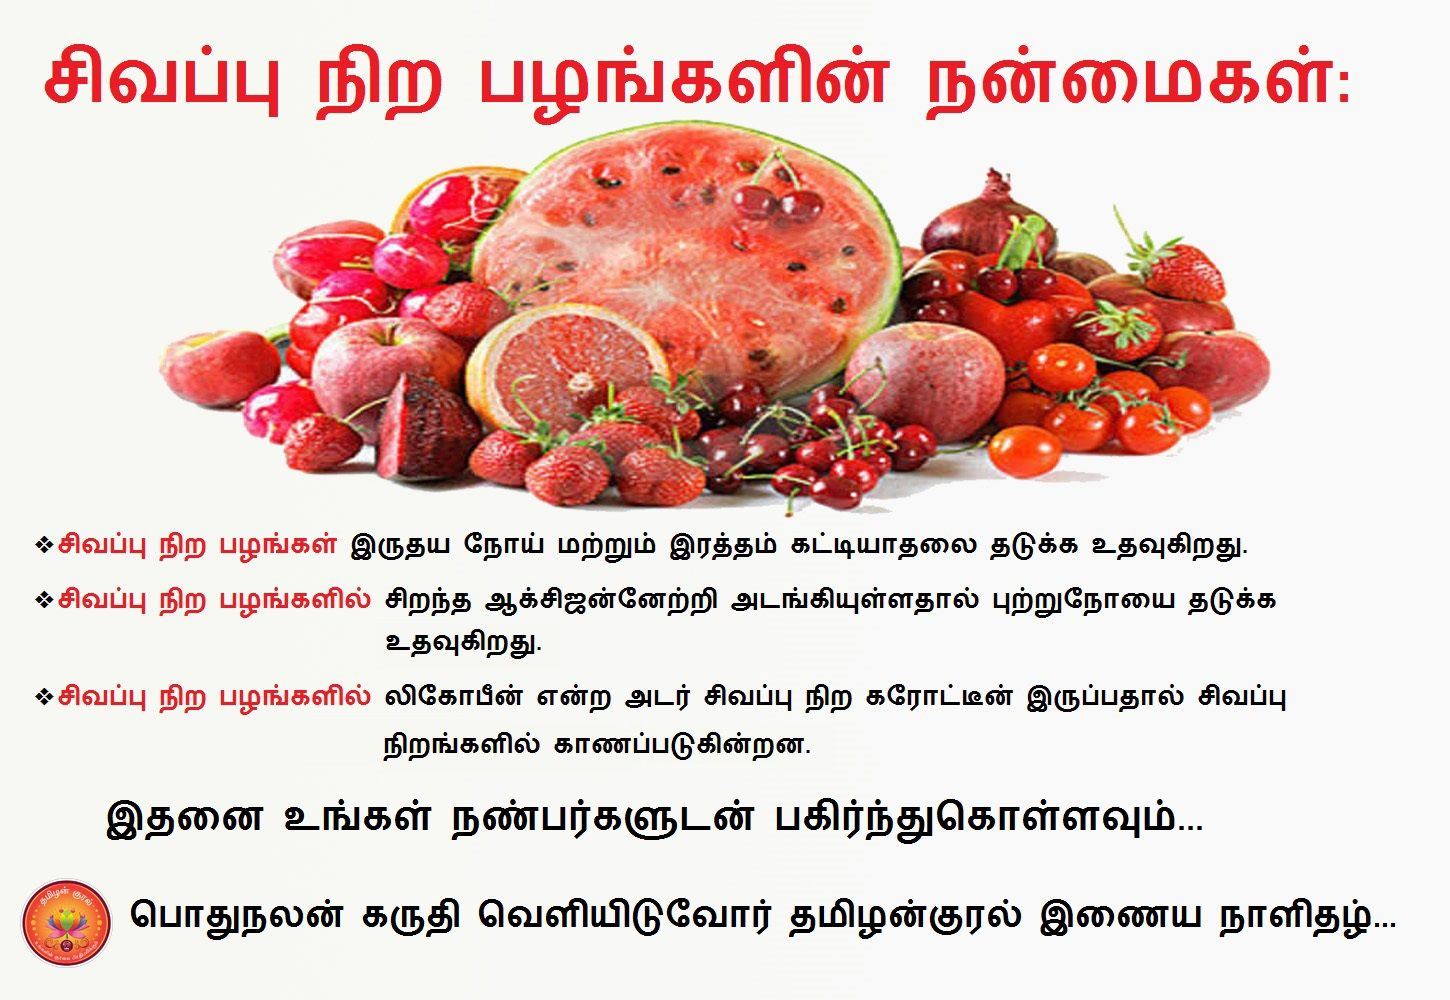 health benefits of red fruits in tamil | health tips